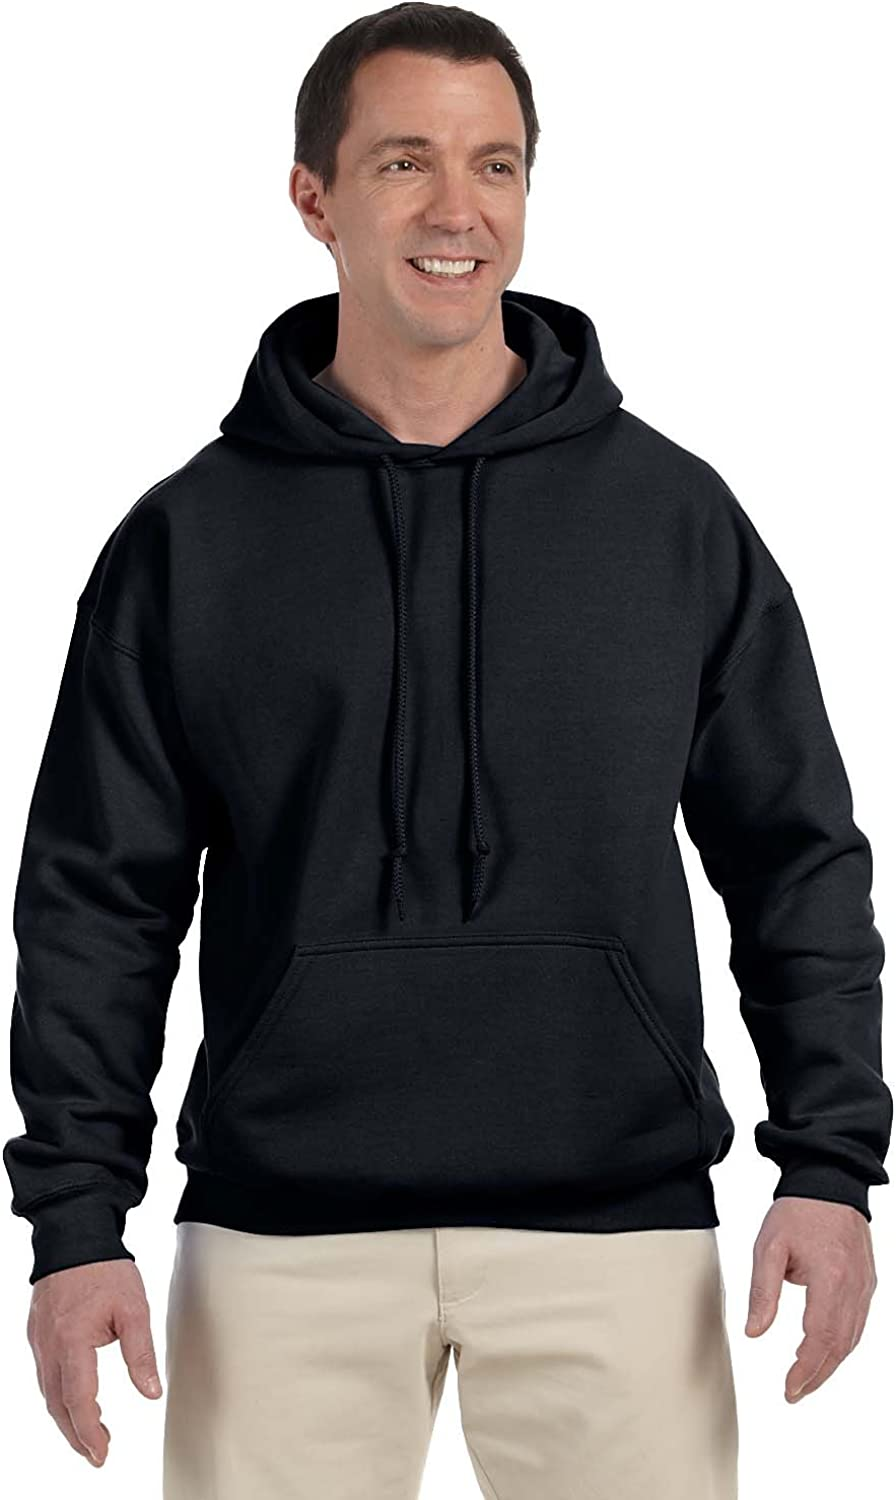 Wake Me When its 2020 Unisex Adult Hoodie